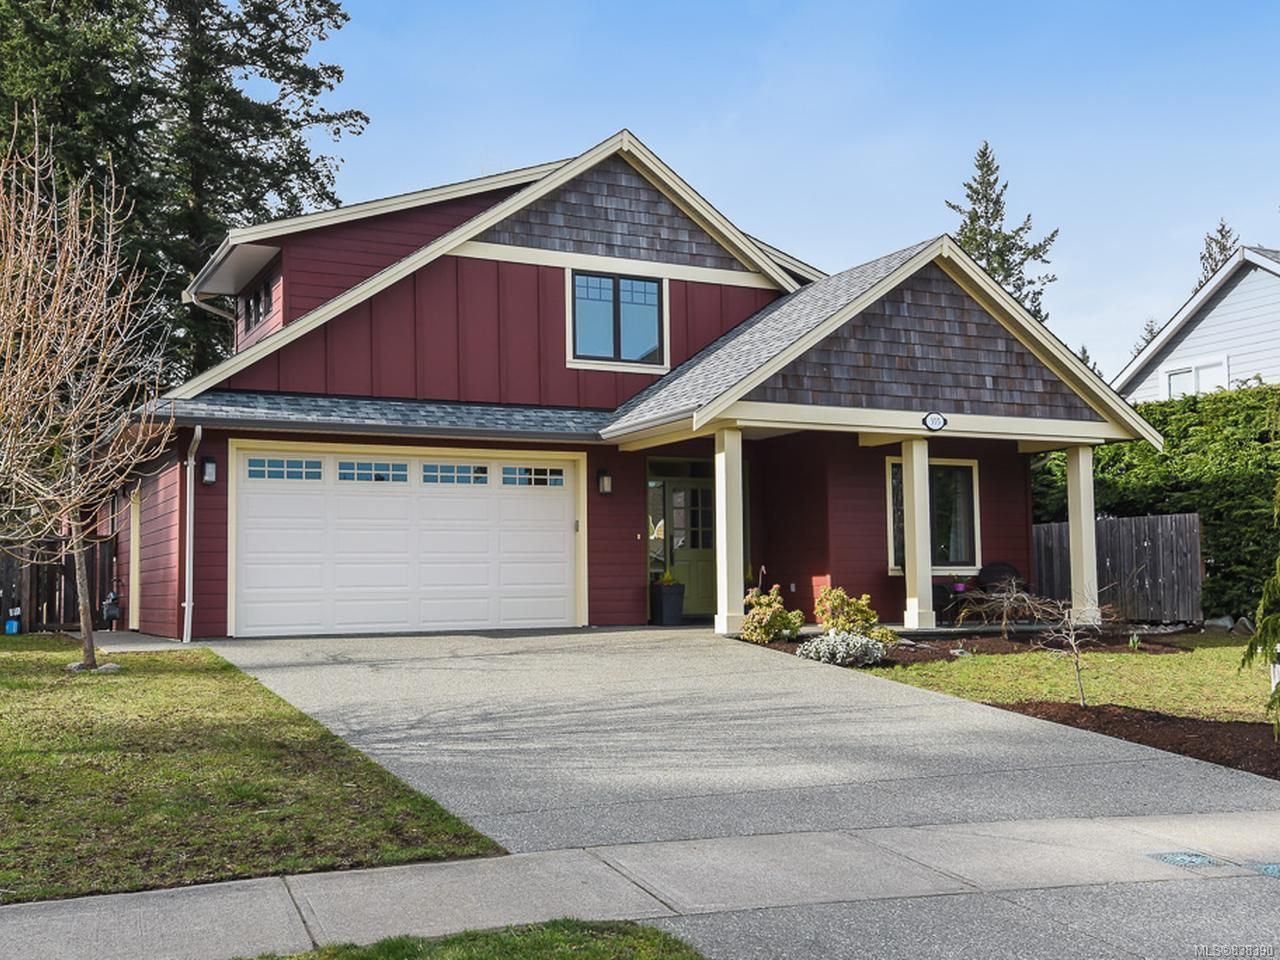 Main Photo: 355 Gardener Way in COMOX: CV Comox (Town of) House for sale (Comox Valley)  : MLS®# 838390